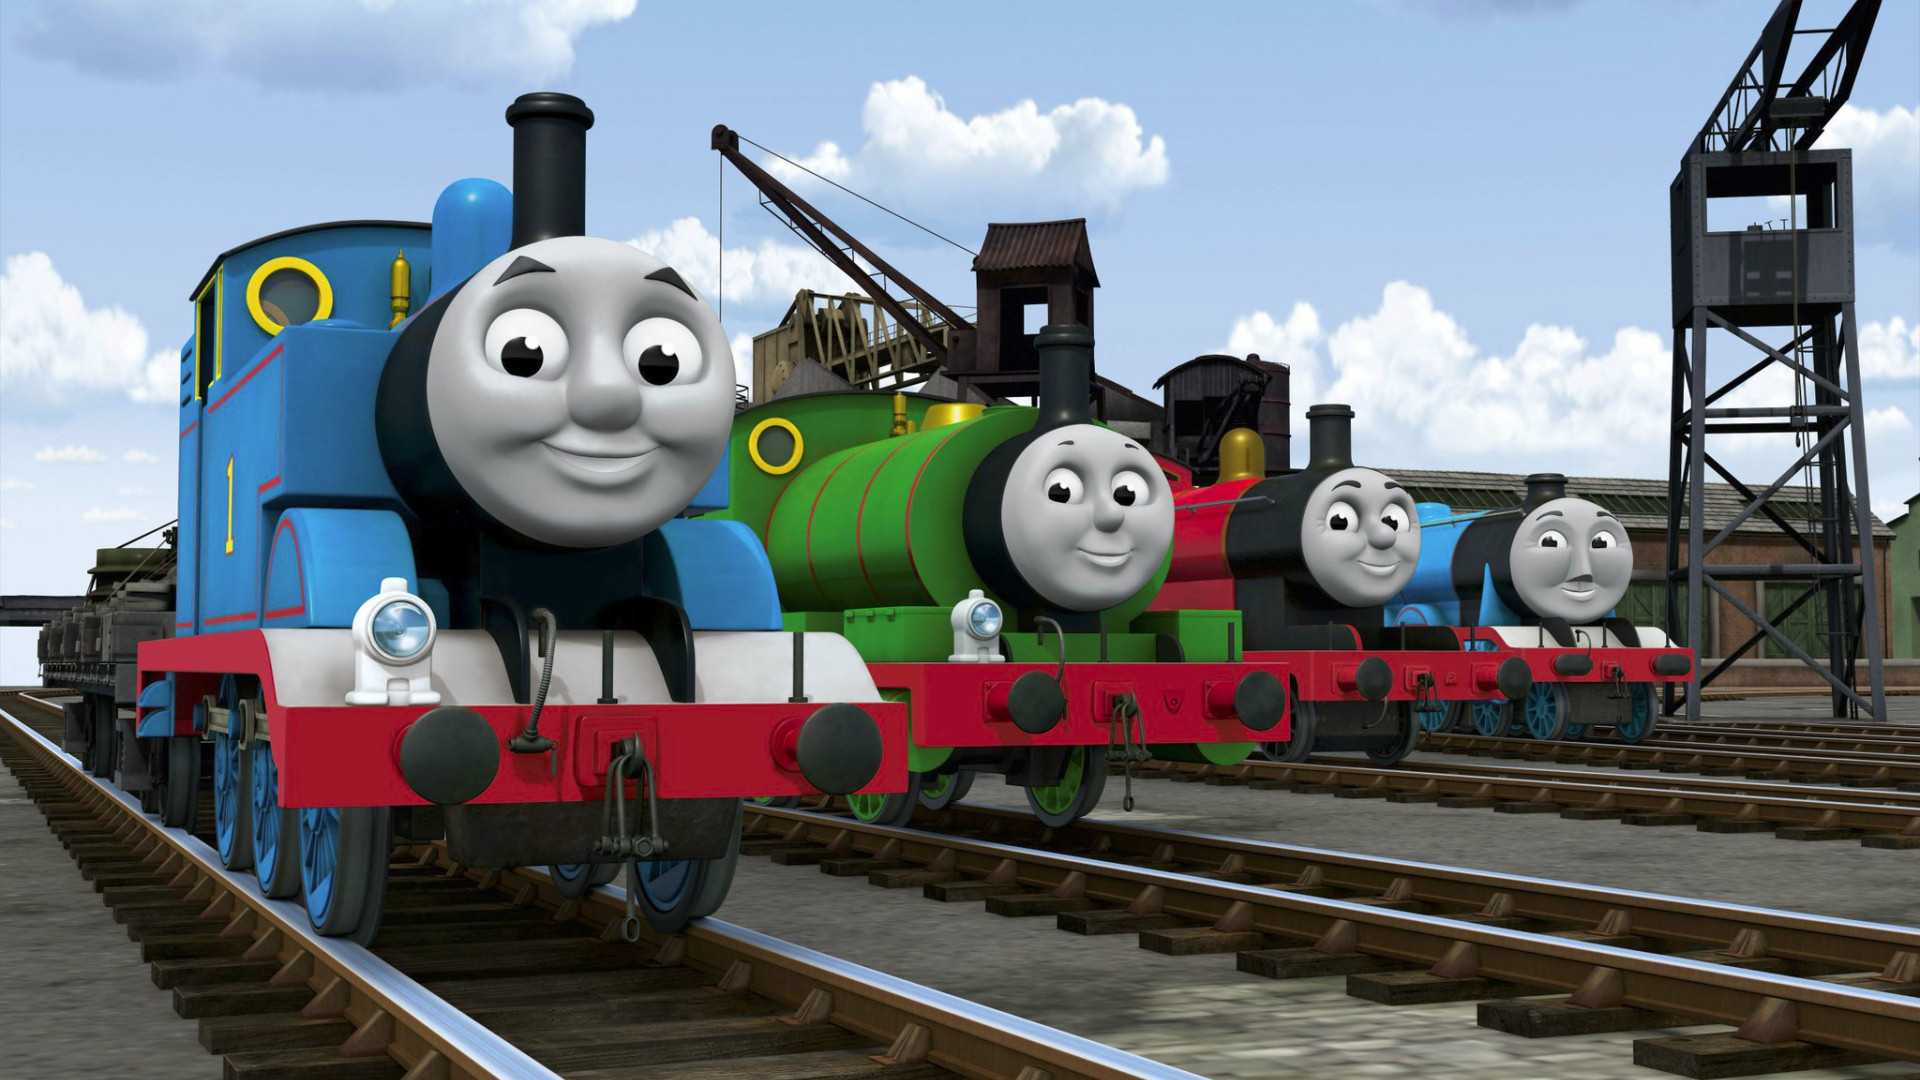 arc productions bankrupt thomas and friends studio locks out 500